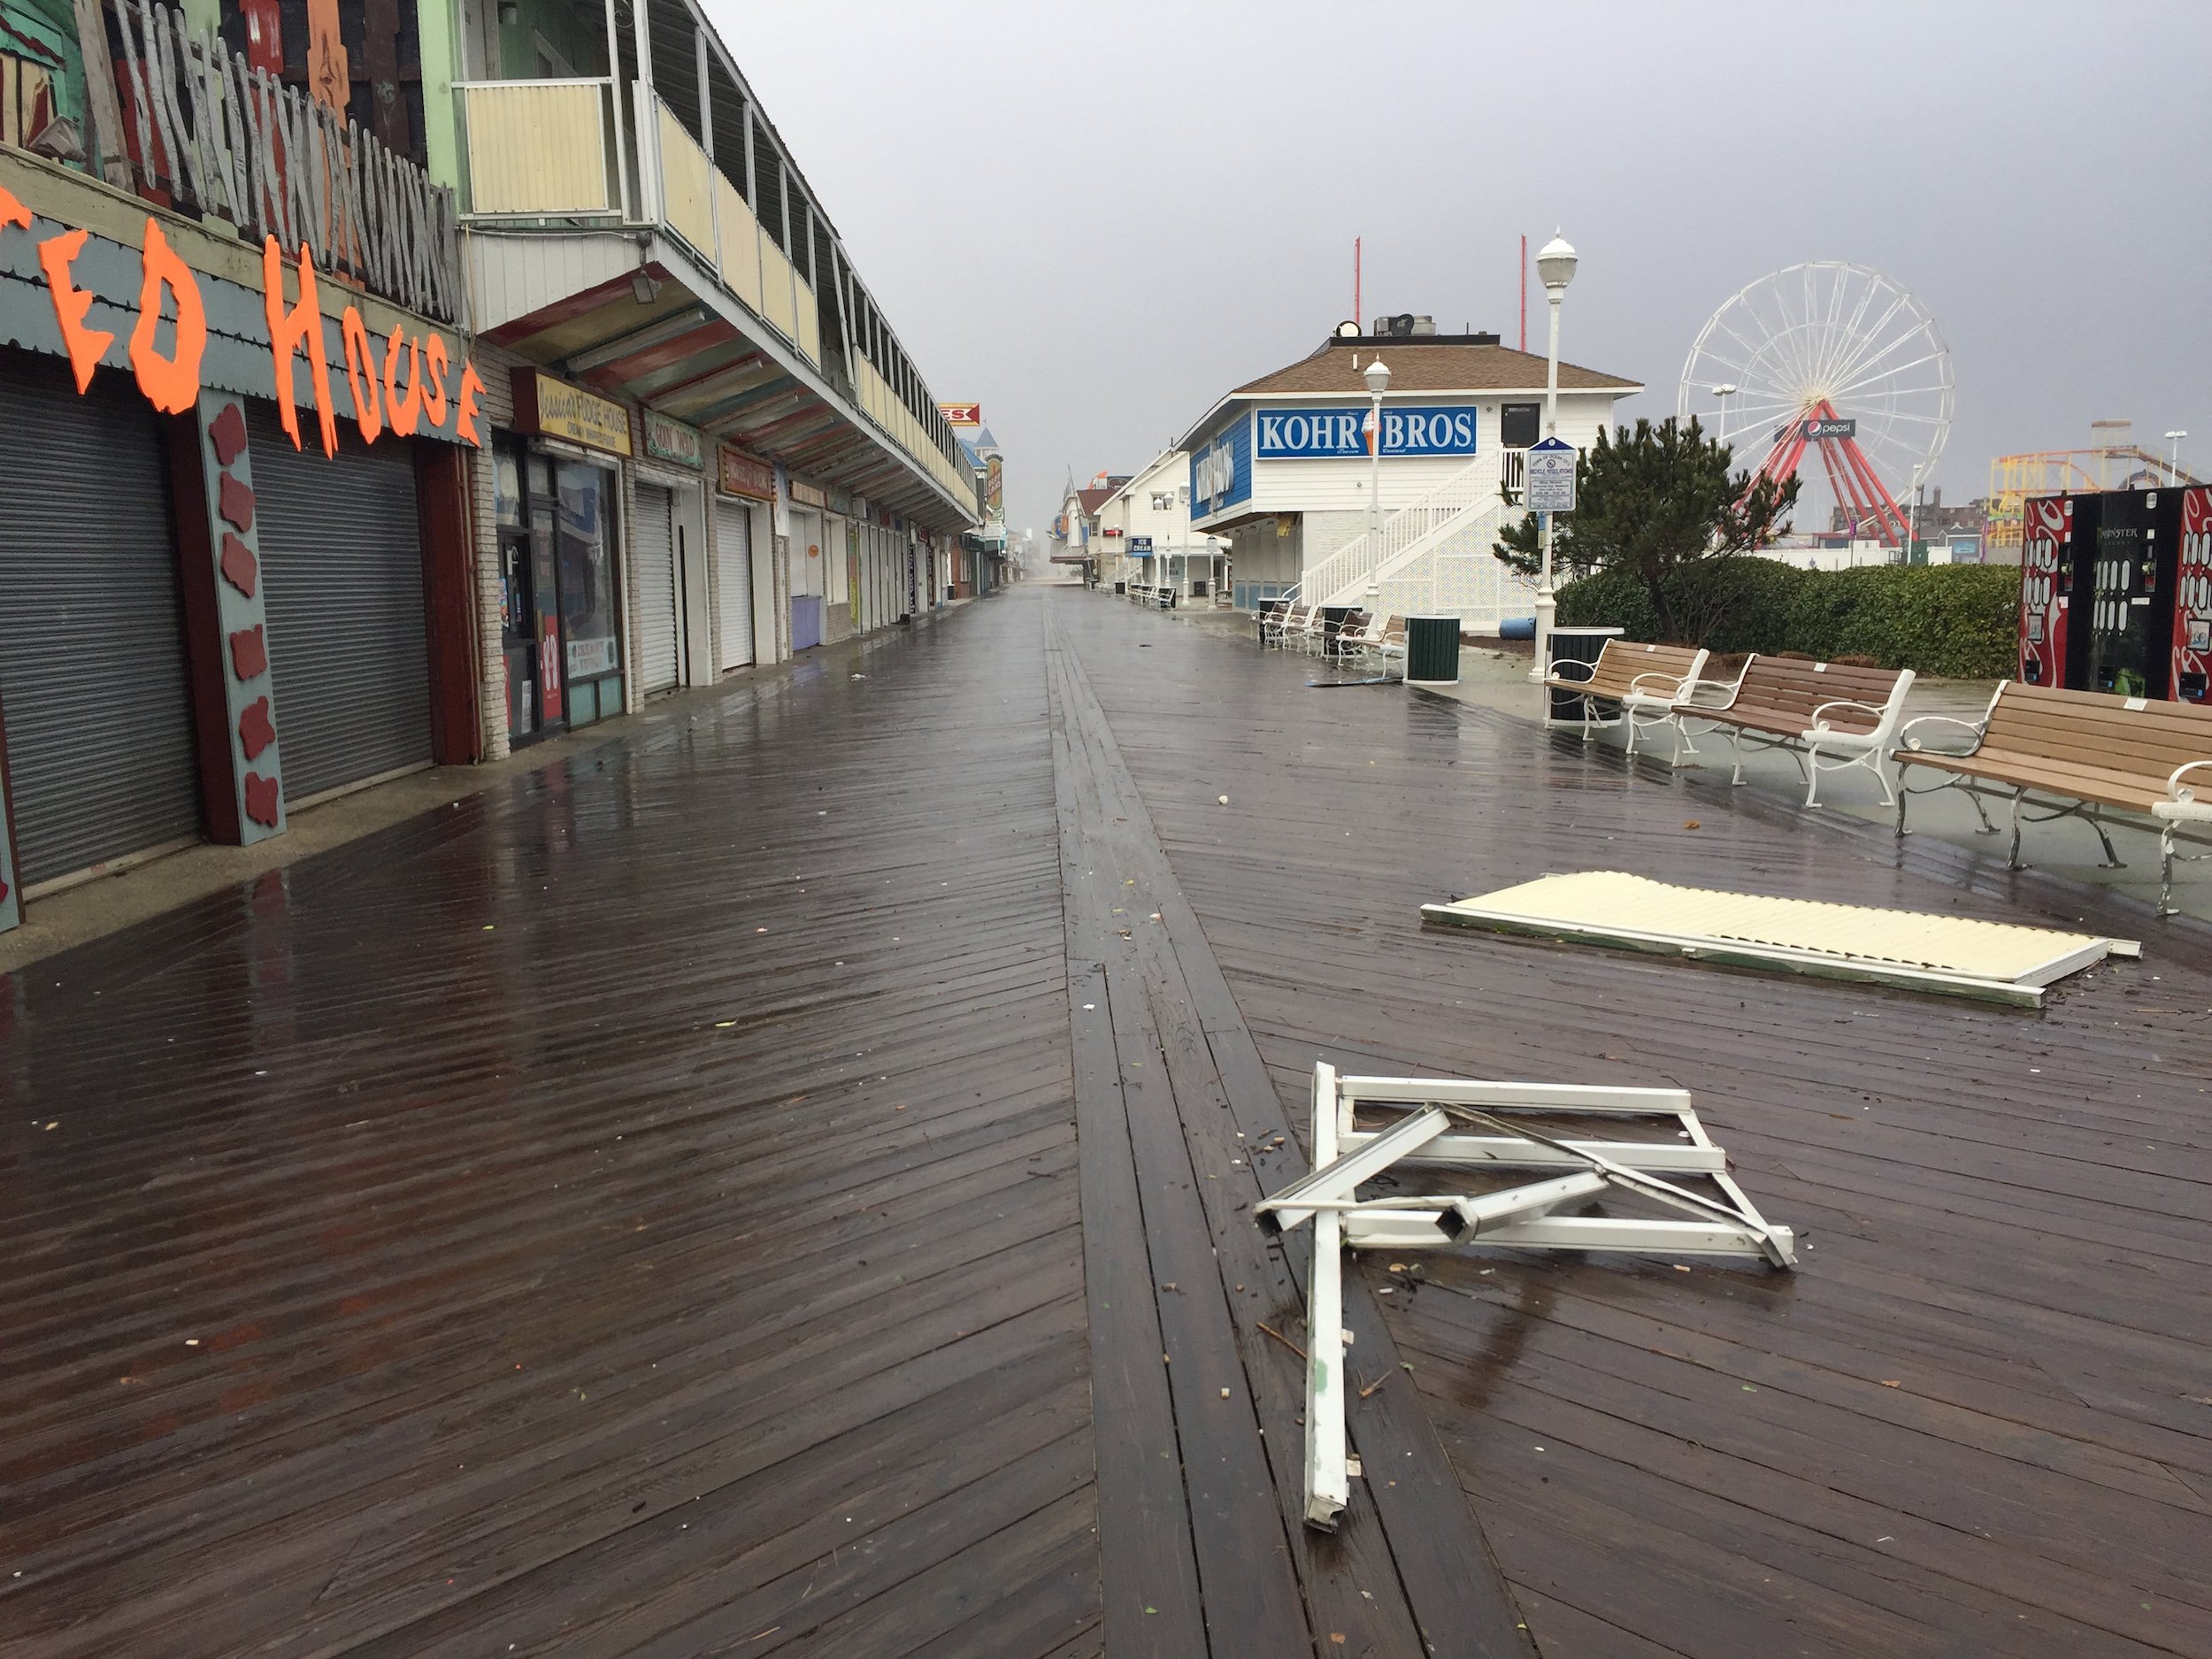 Winter storm jonas pounds ocean city maryland ocean for Maryland fishing piers